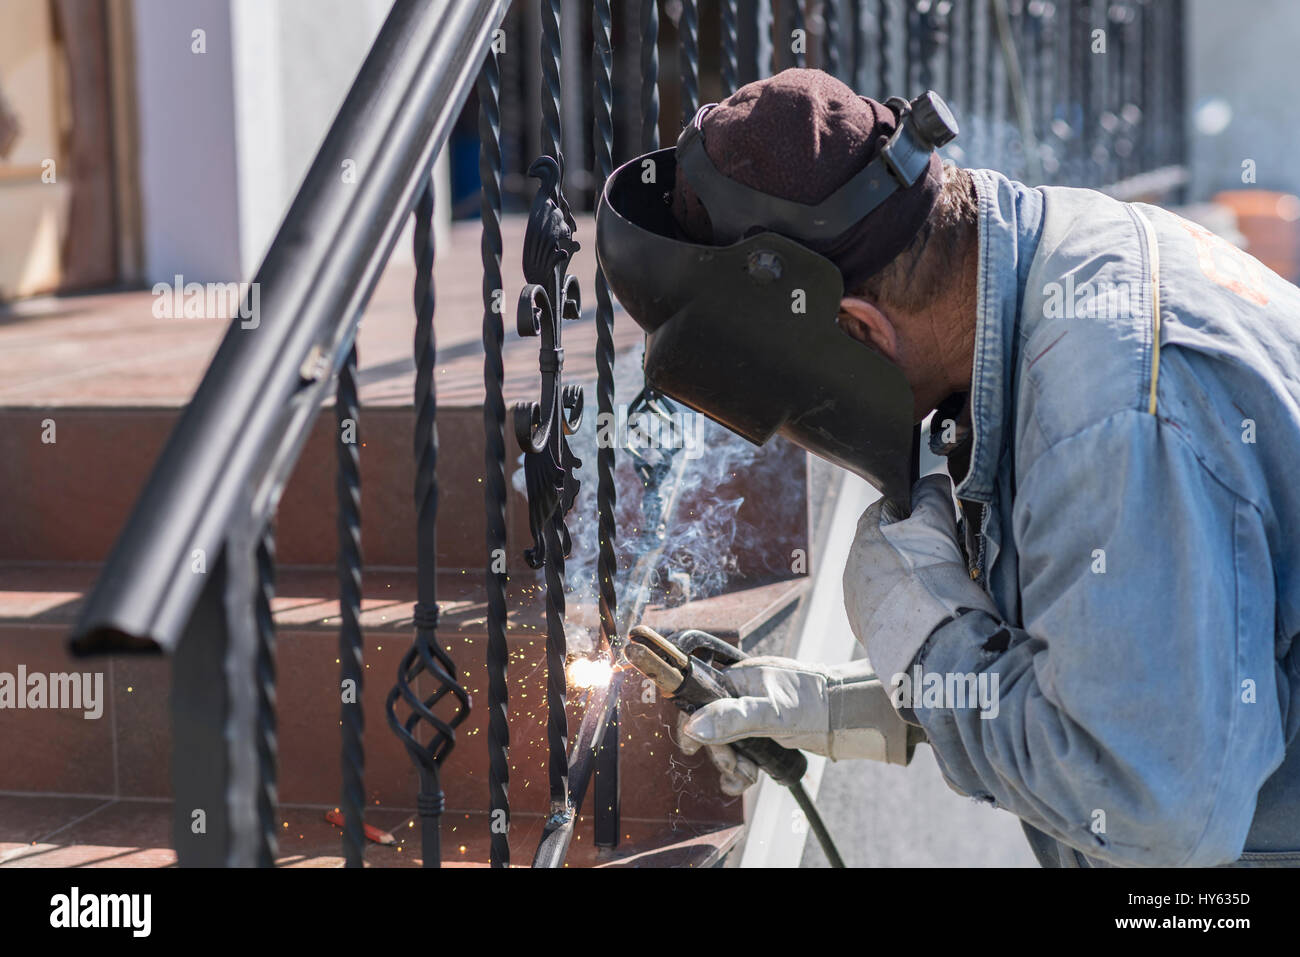 A Worker Welding Metal Handrails On The Stairs Wrought